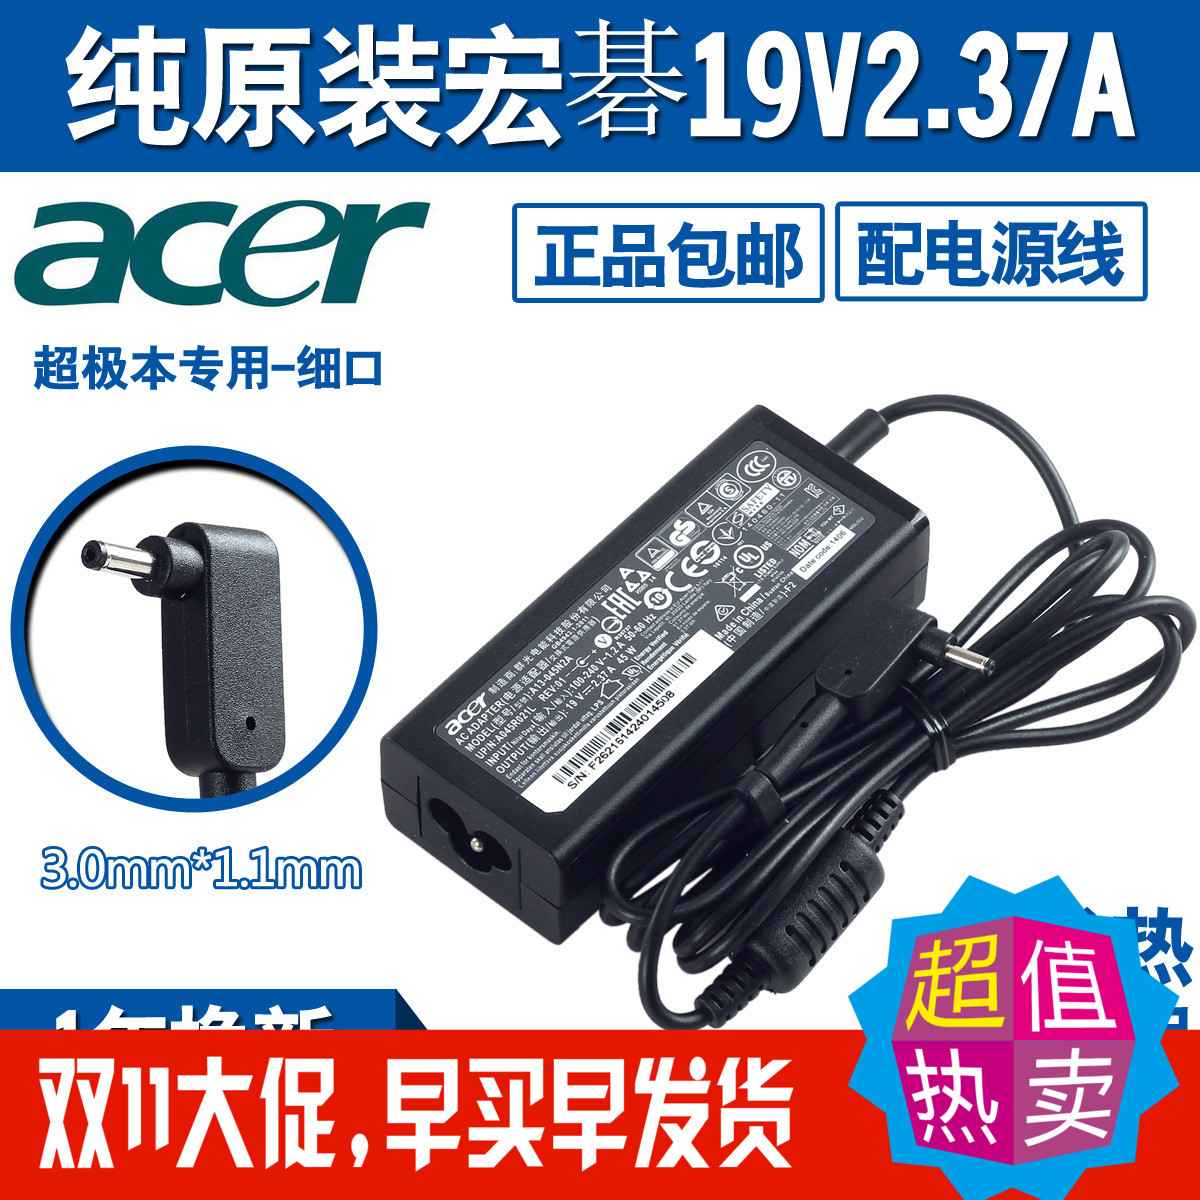 Acer s7391V3-371acer switch laptop charger 19V2.37A power adapter